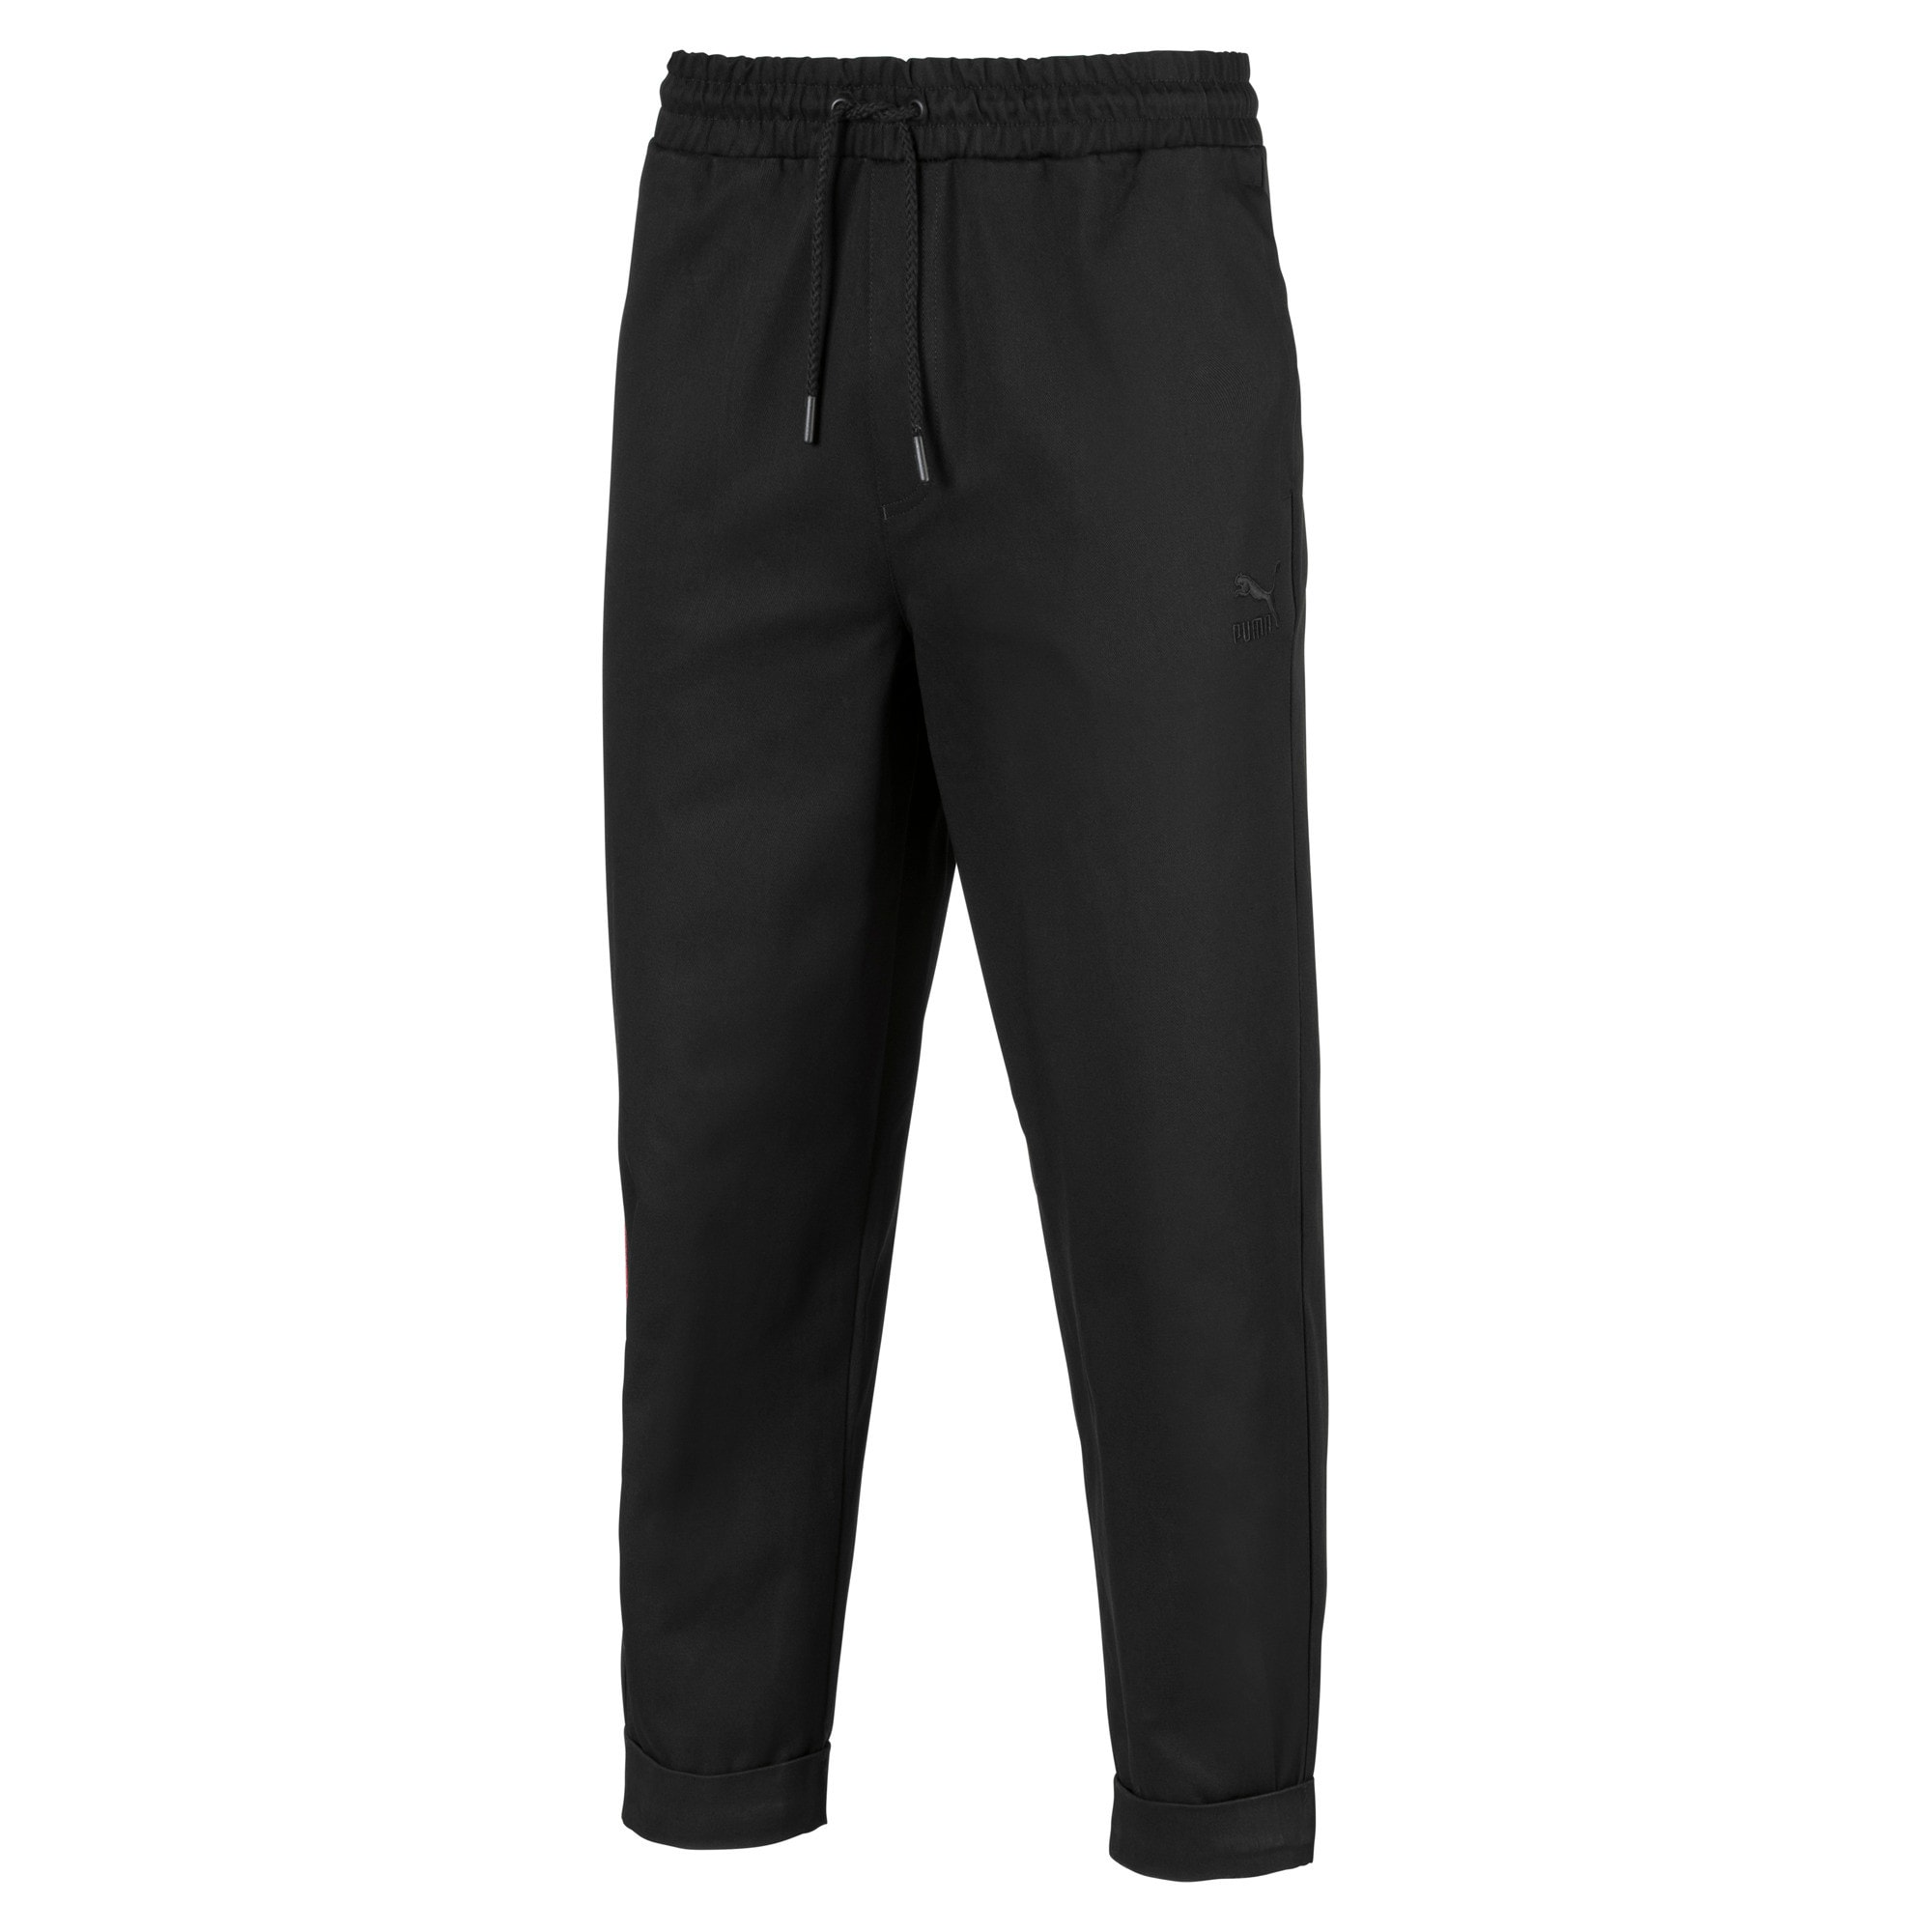 Thumbnail 1 of Evolution Chino Men's Pants, Puma Black, medium